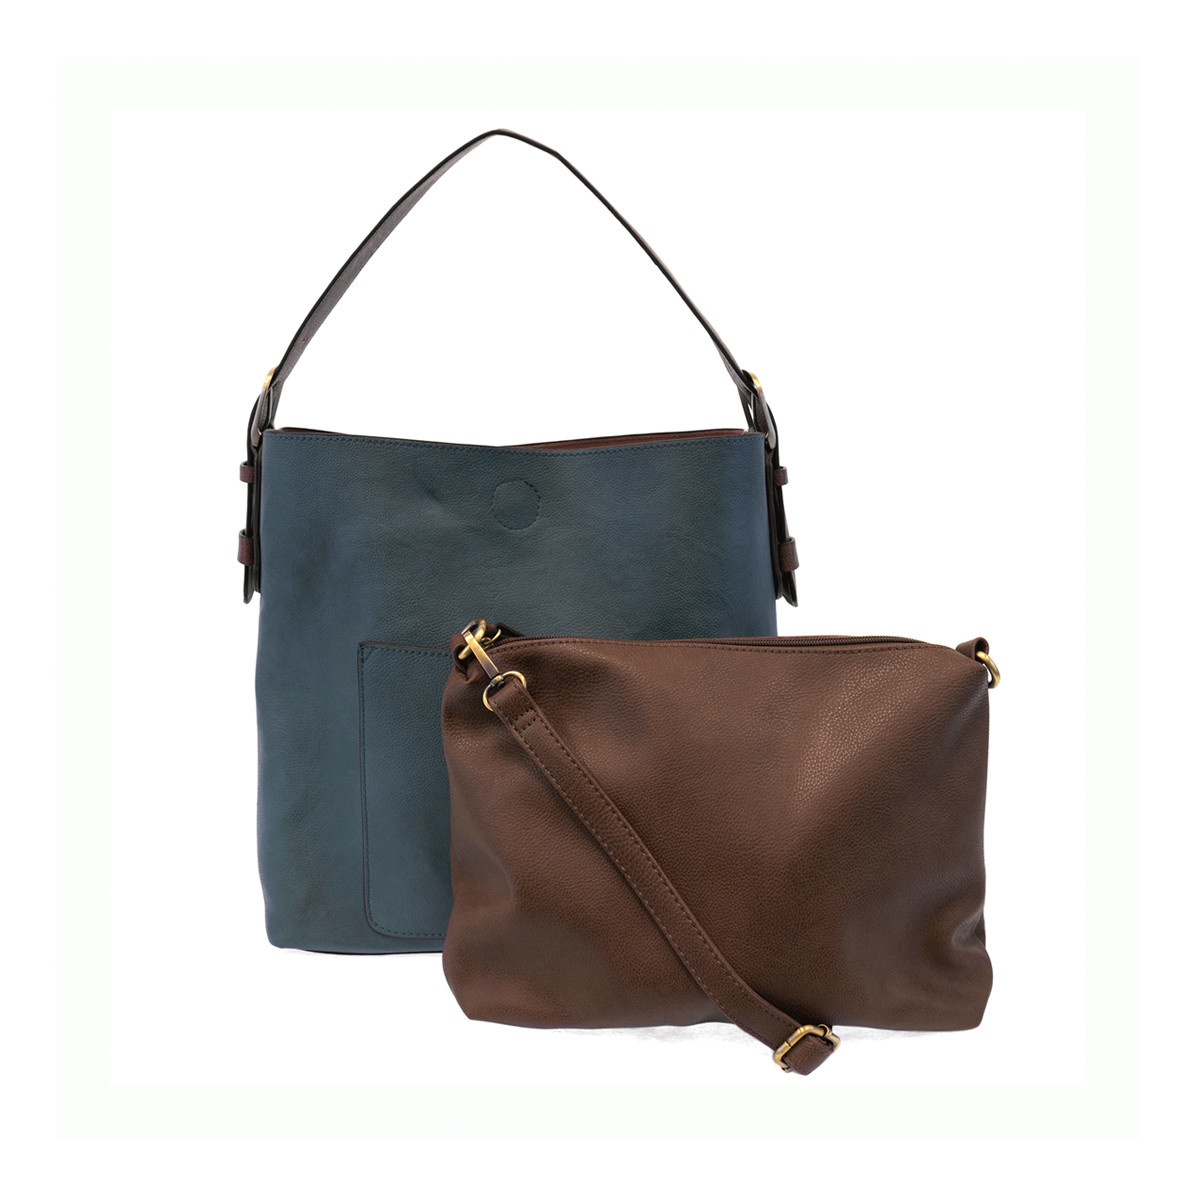 Joy Susan Joy Susan Classic Hobo Handbag Dark Chambray